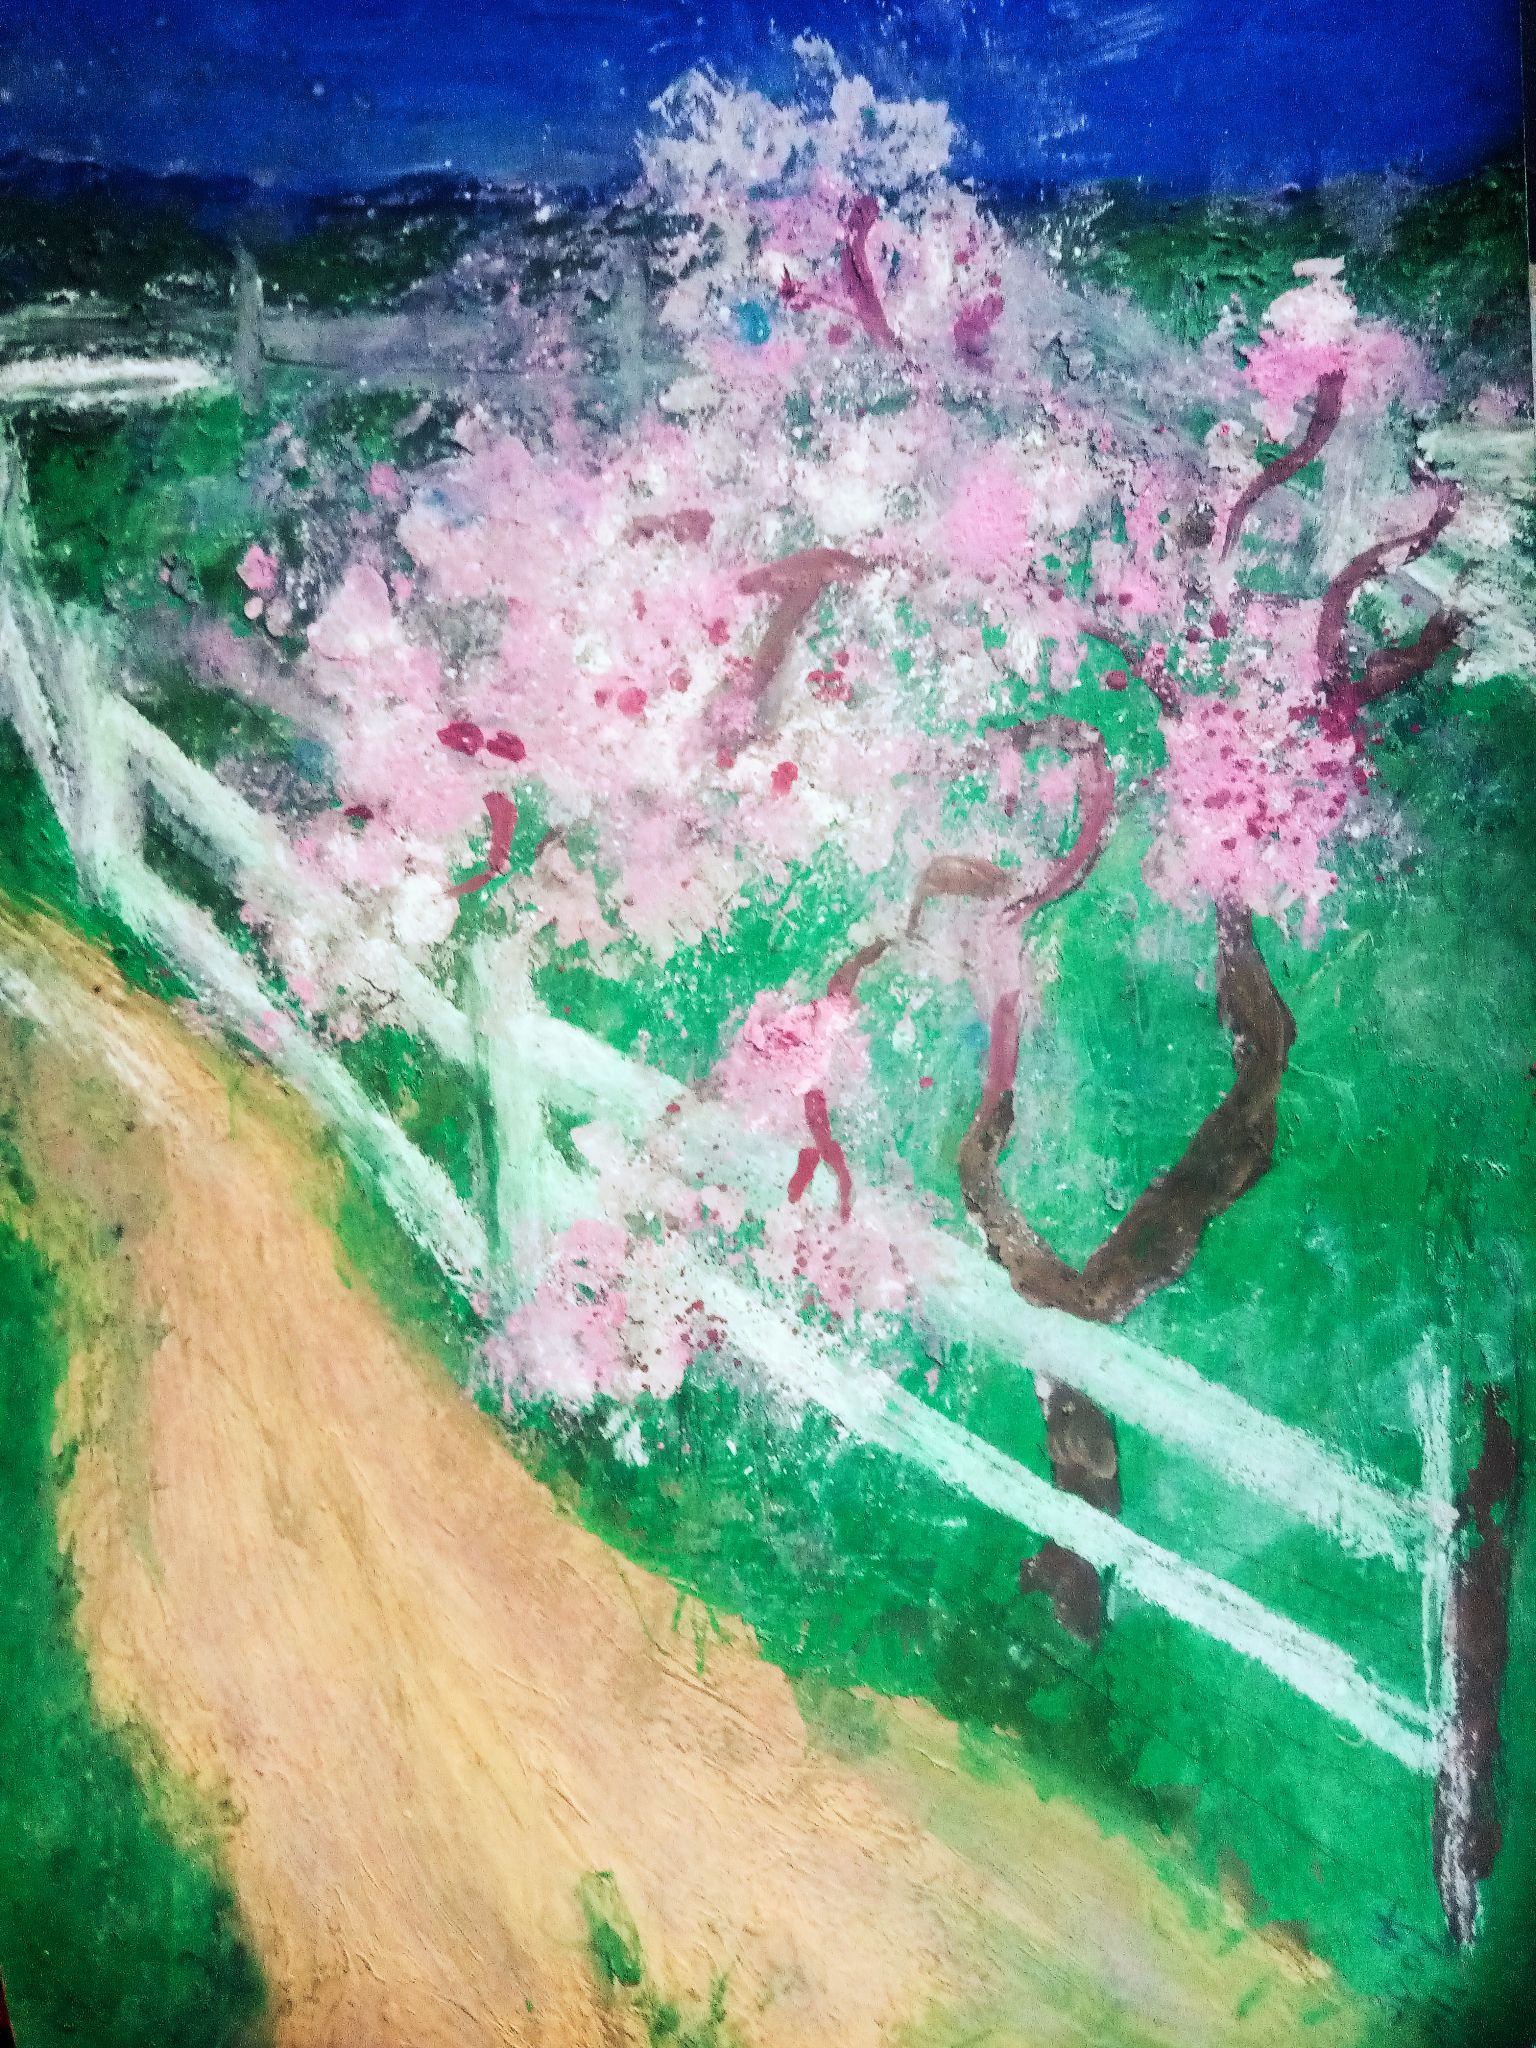 Painting in the style of impressionism for the interior, part 1